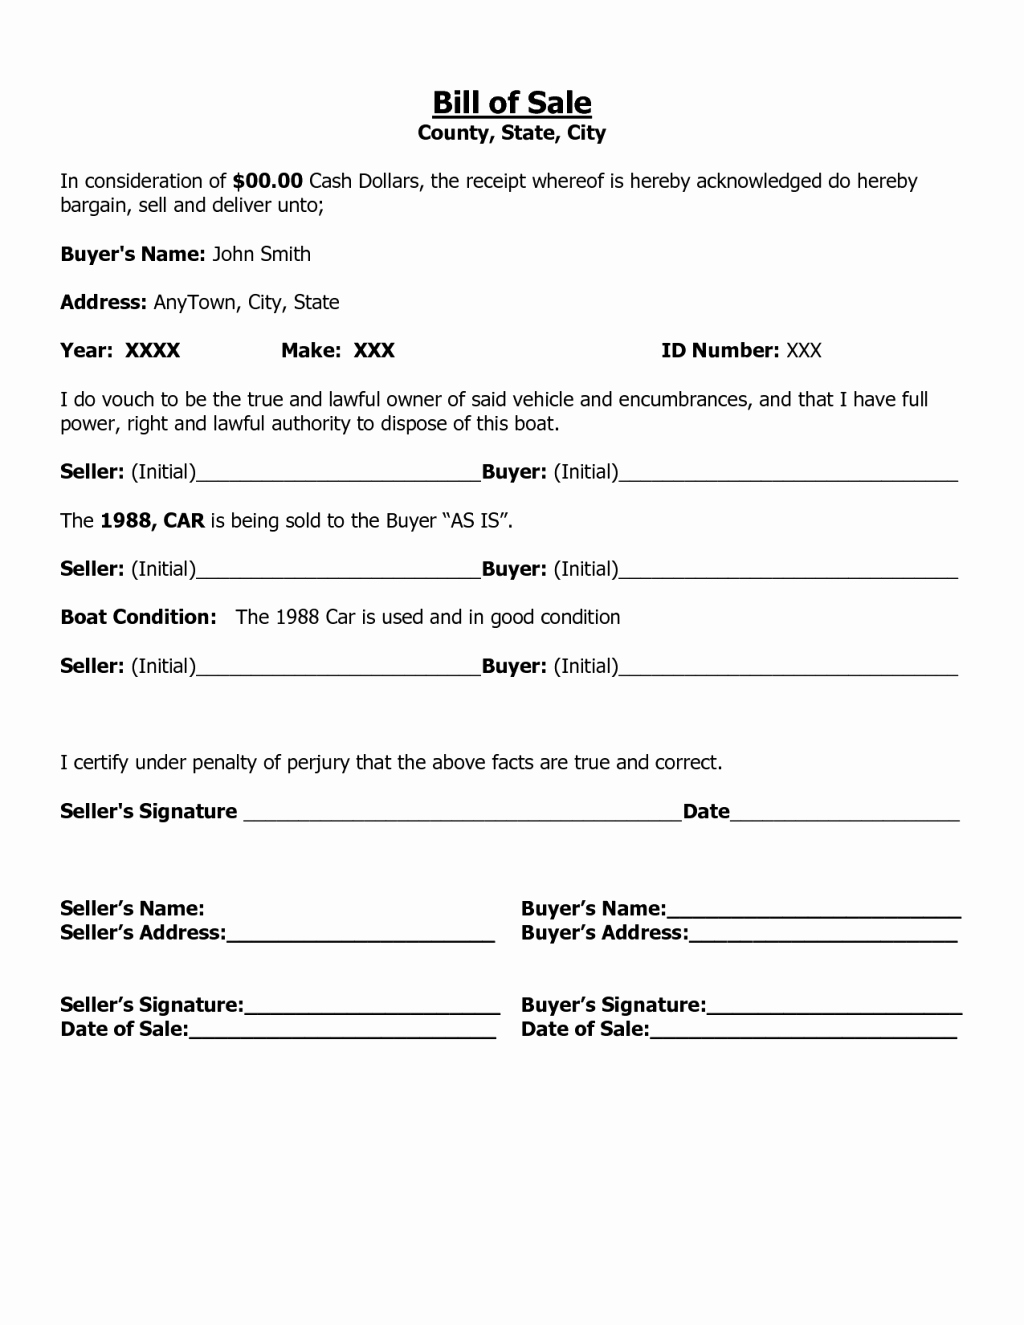 Blank Bill Of Sale Vehicle Best Of Bill Sale Sample Document Free Blank Invoice form